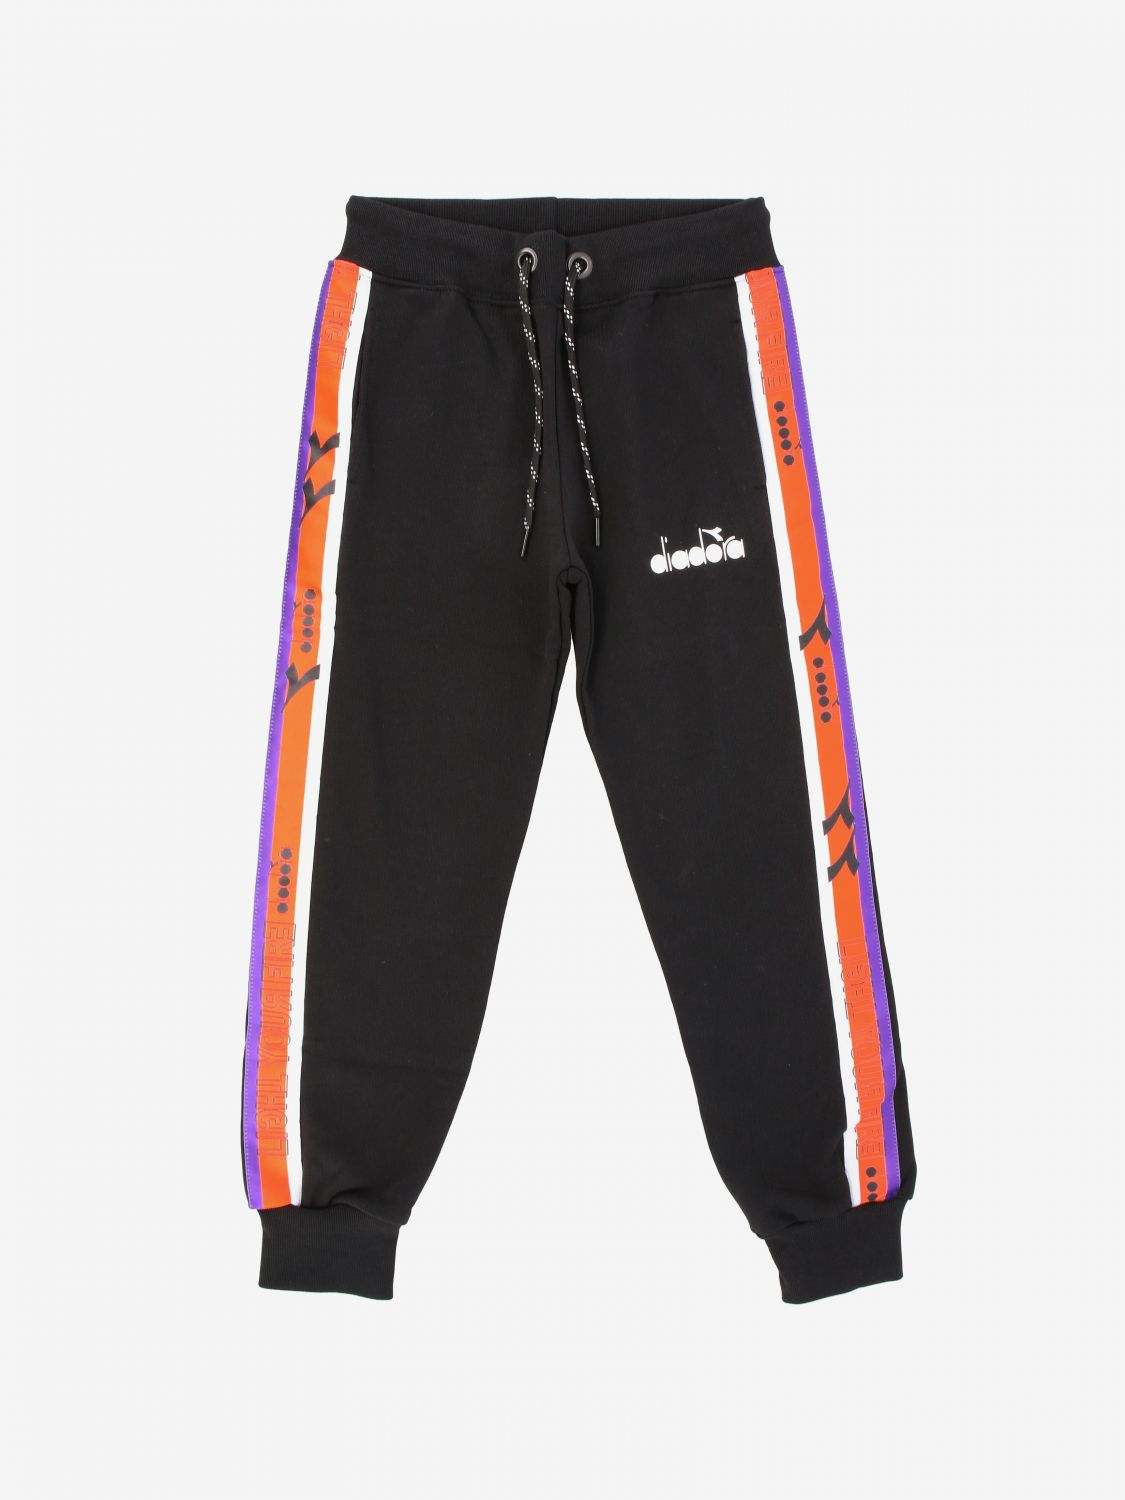 Diadora jogging trousers with logo black 1